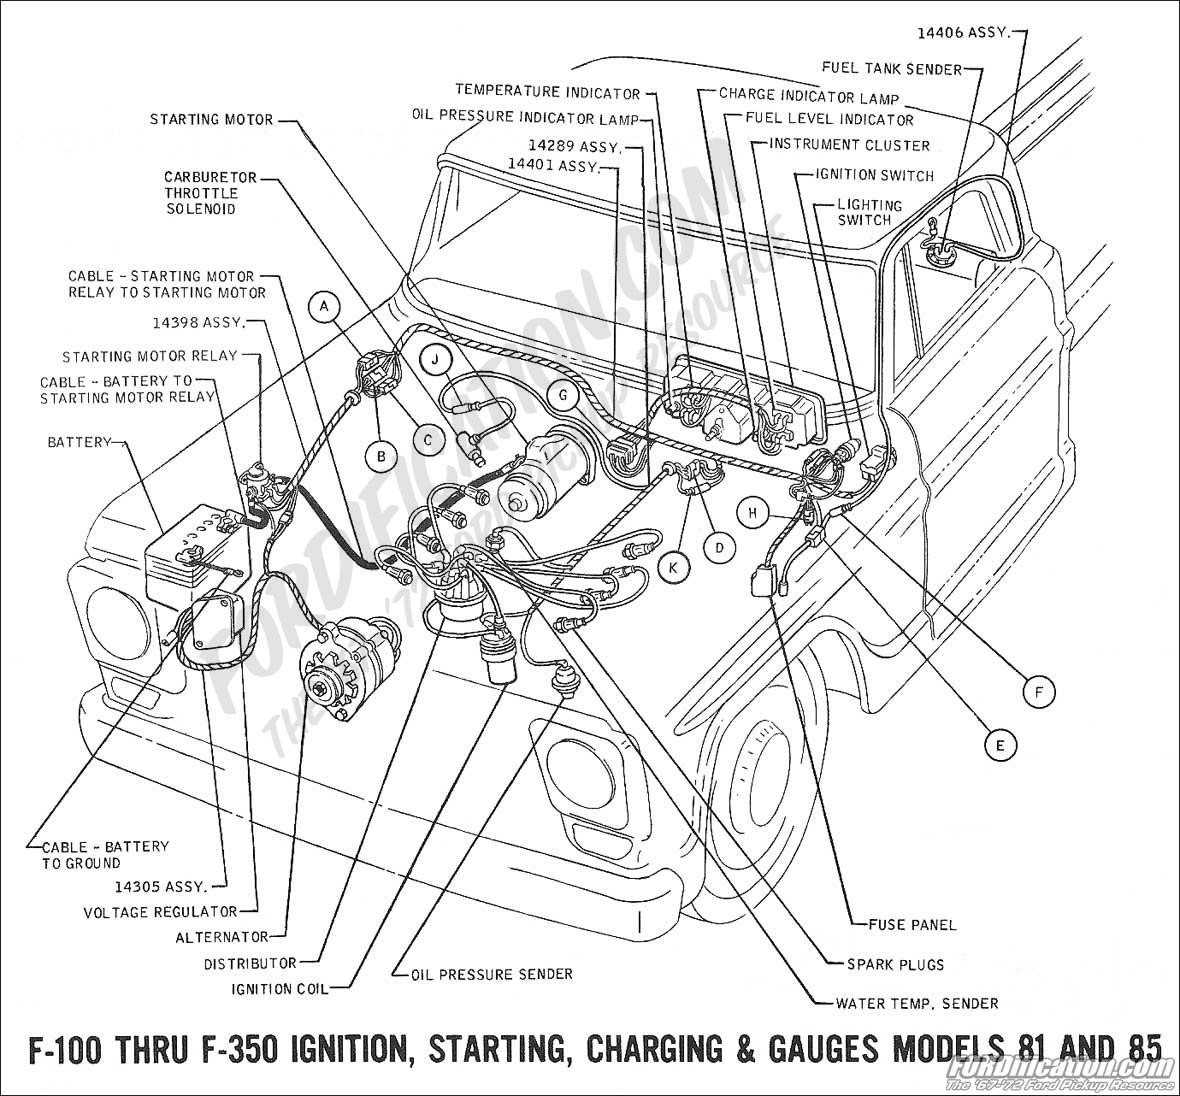 wiring 1969charging 69 f100 wiring diagram 1973 ford f100 wiring diagram \u2022 wiring 1966 ford f100 wiring diagram at gsmx.co